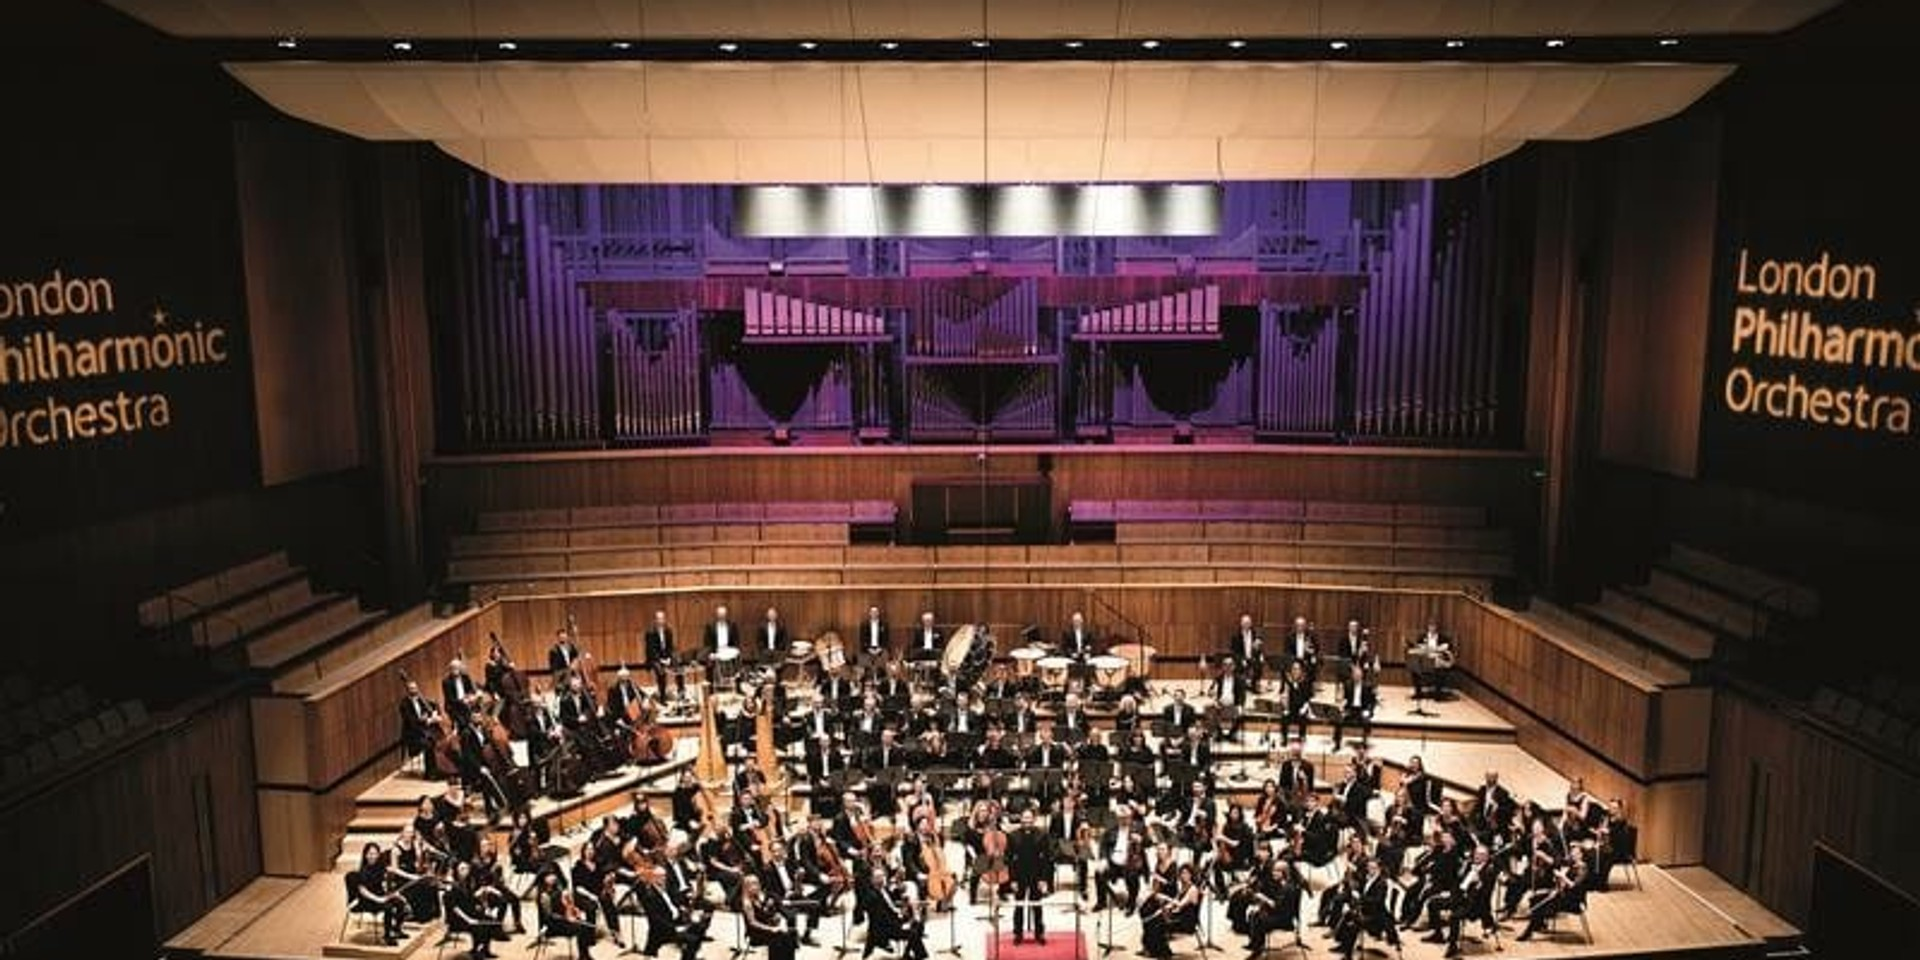 London Philharmonic Orchestra releases Singapore-inspired symphony recording globally